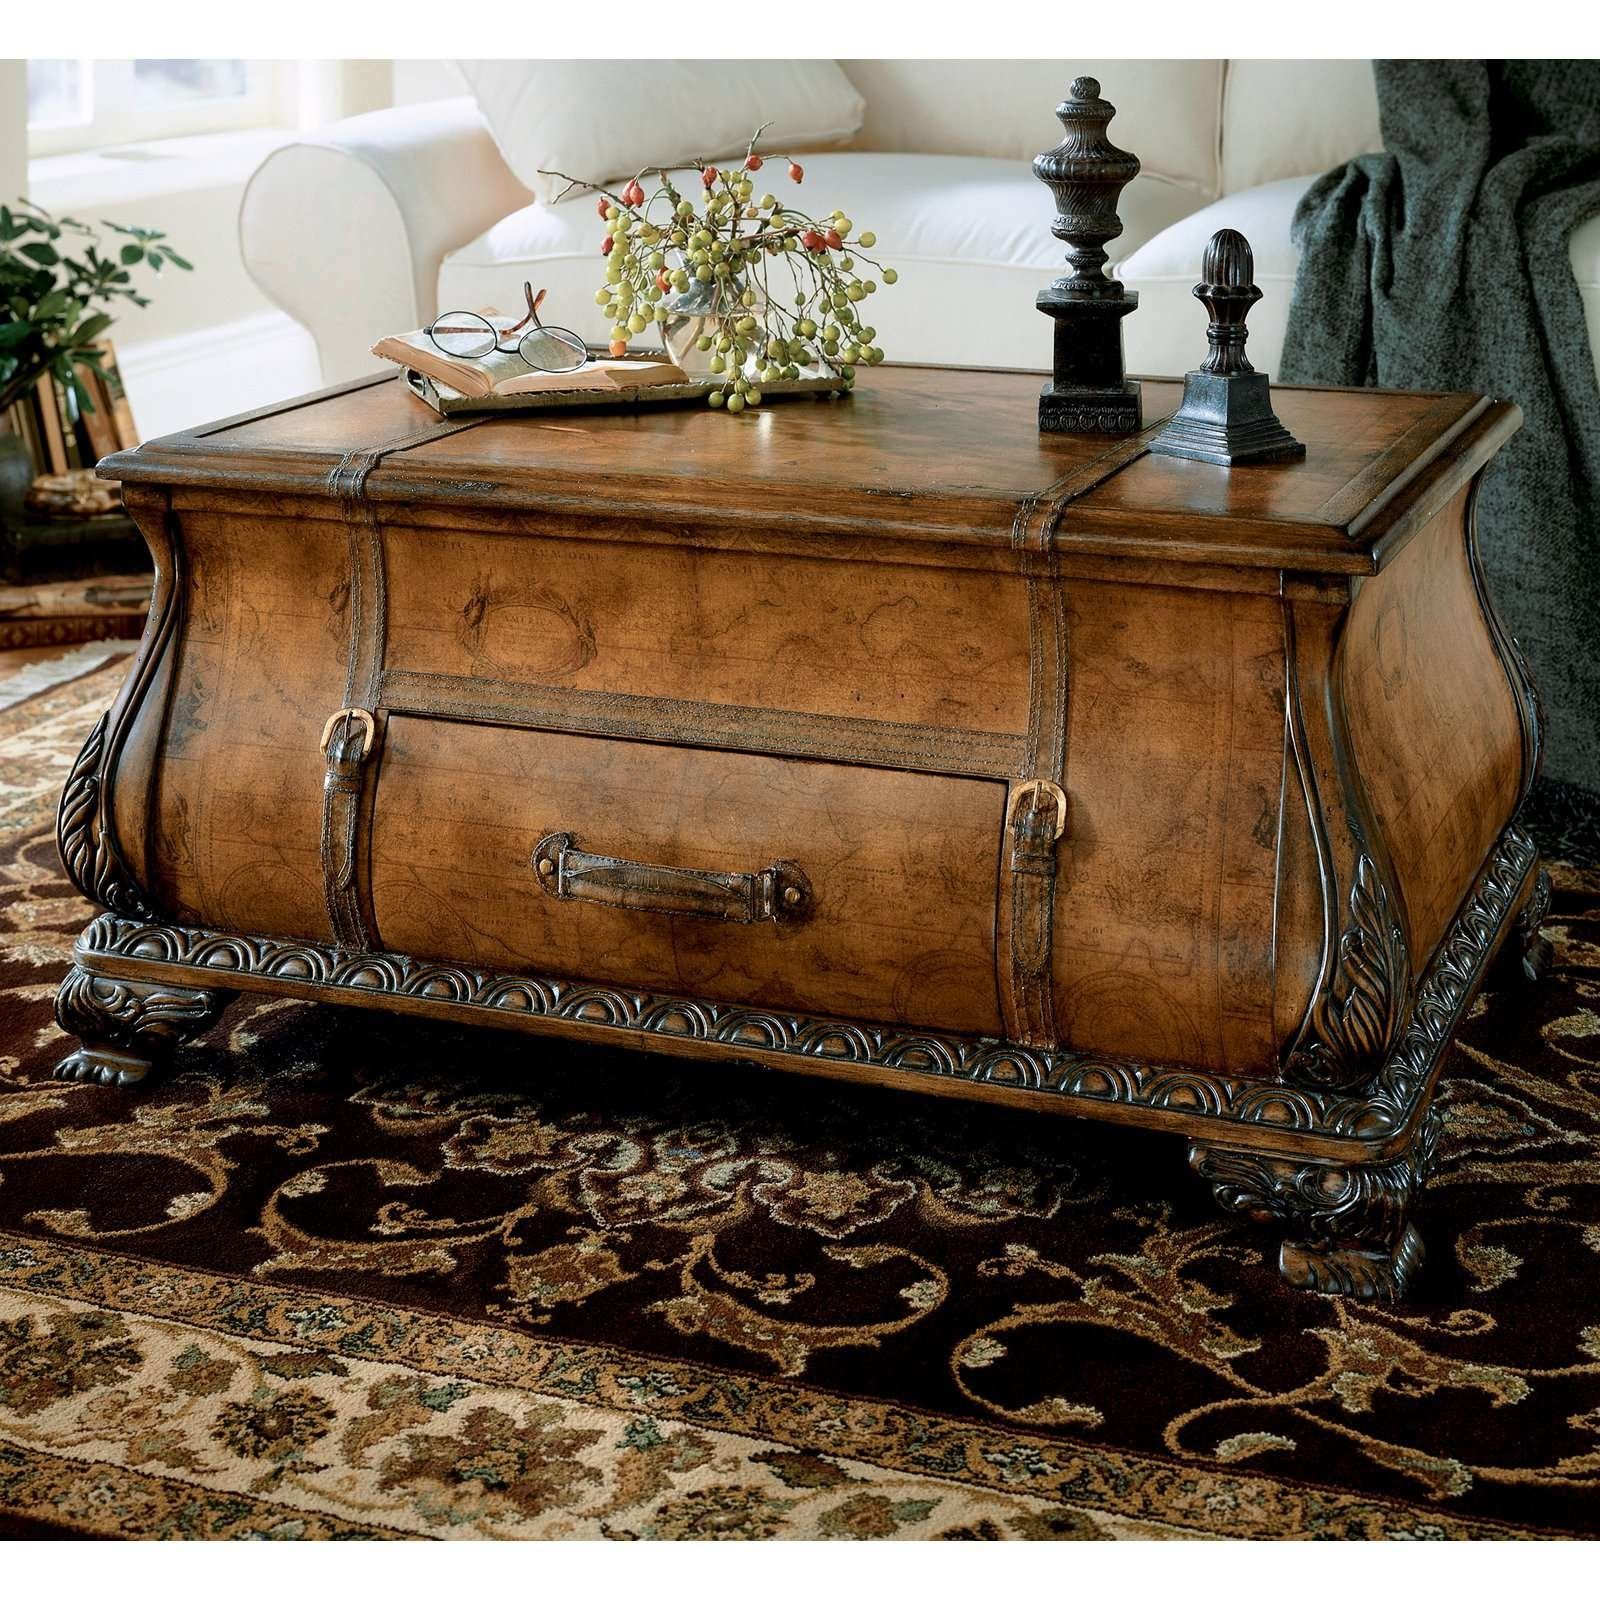 Fashionable Bombay Coffee Tables Pertaining To Butler Bombe Trunk Coffee Table – Heritage – Walmart (View 17 of 20)